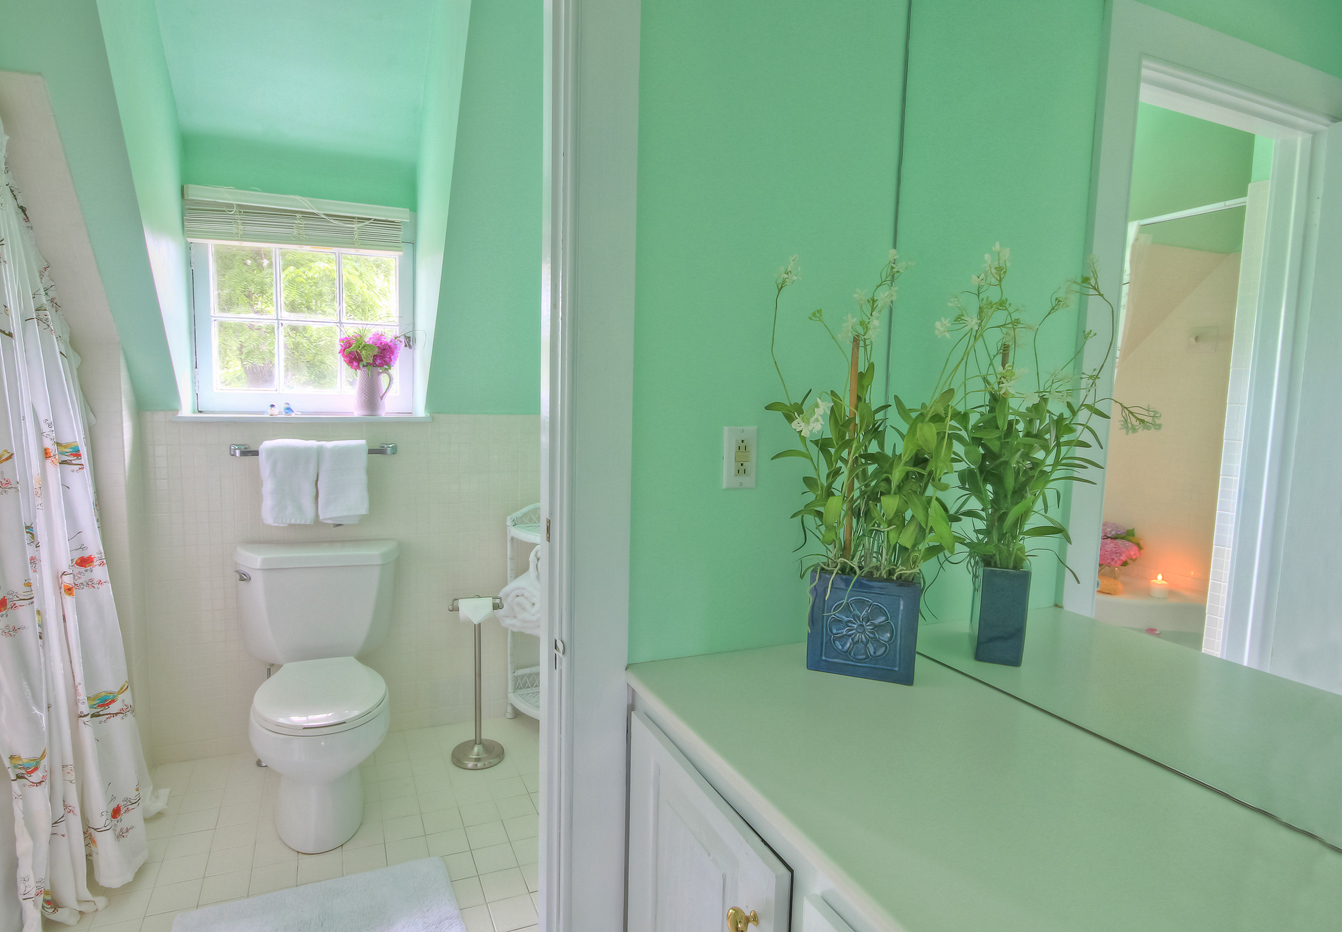 partial vanity view in bathroom with toilet and shower in cottage